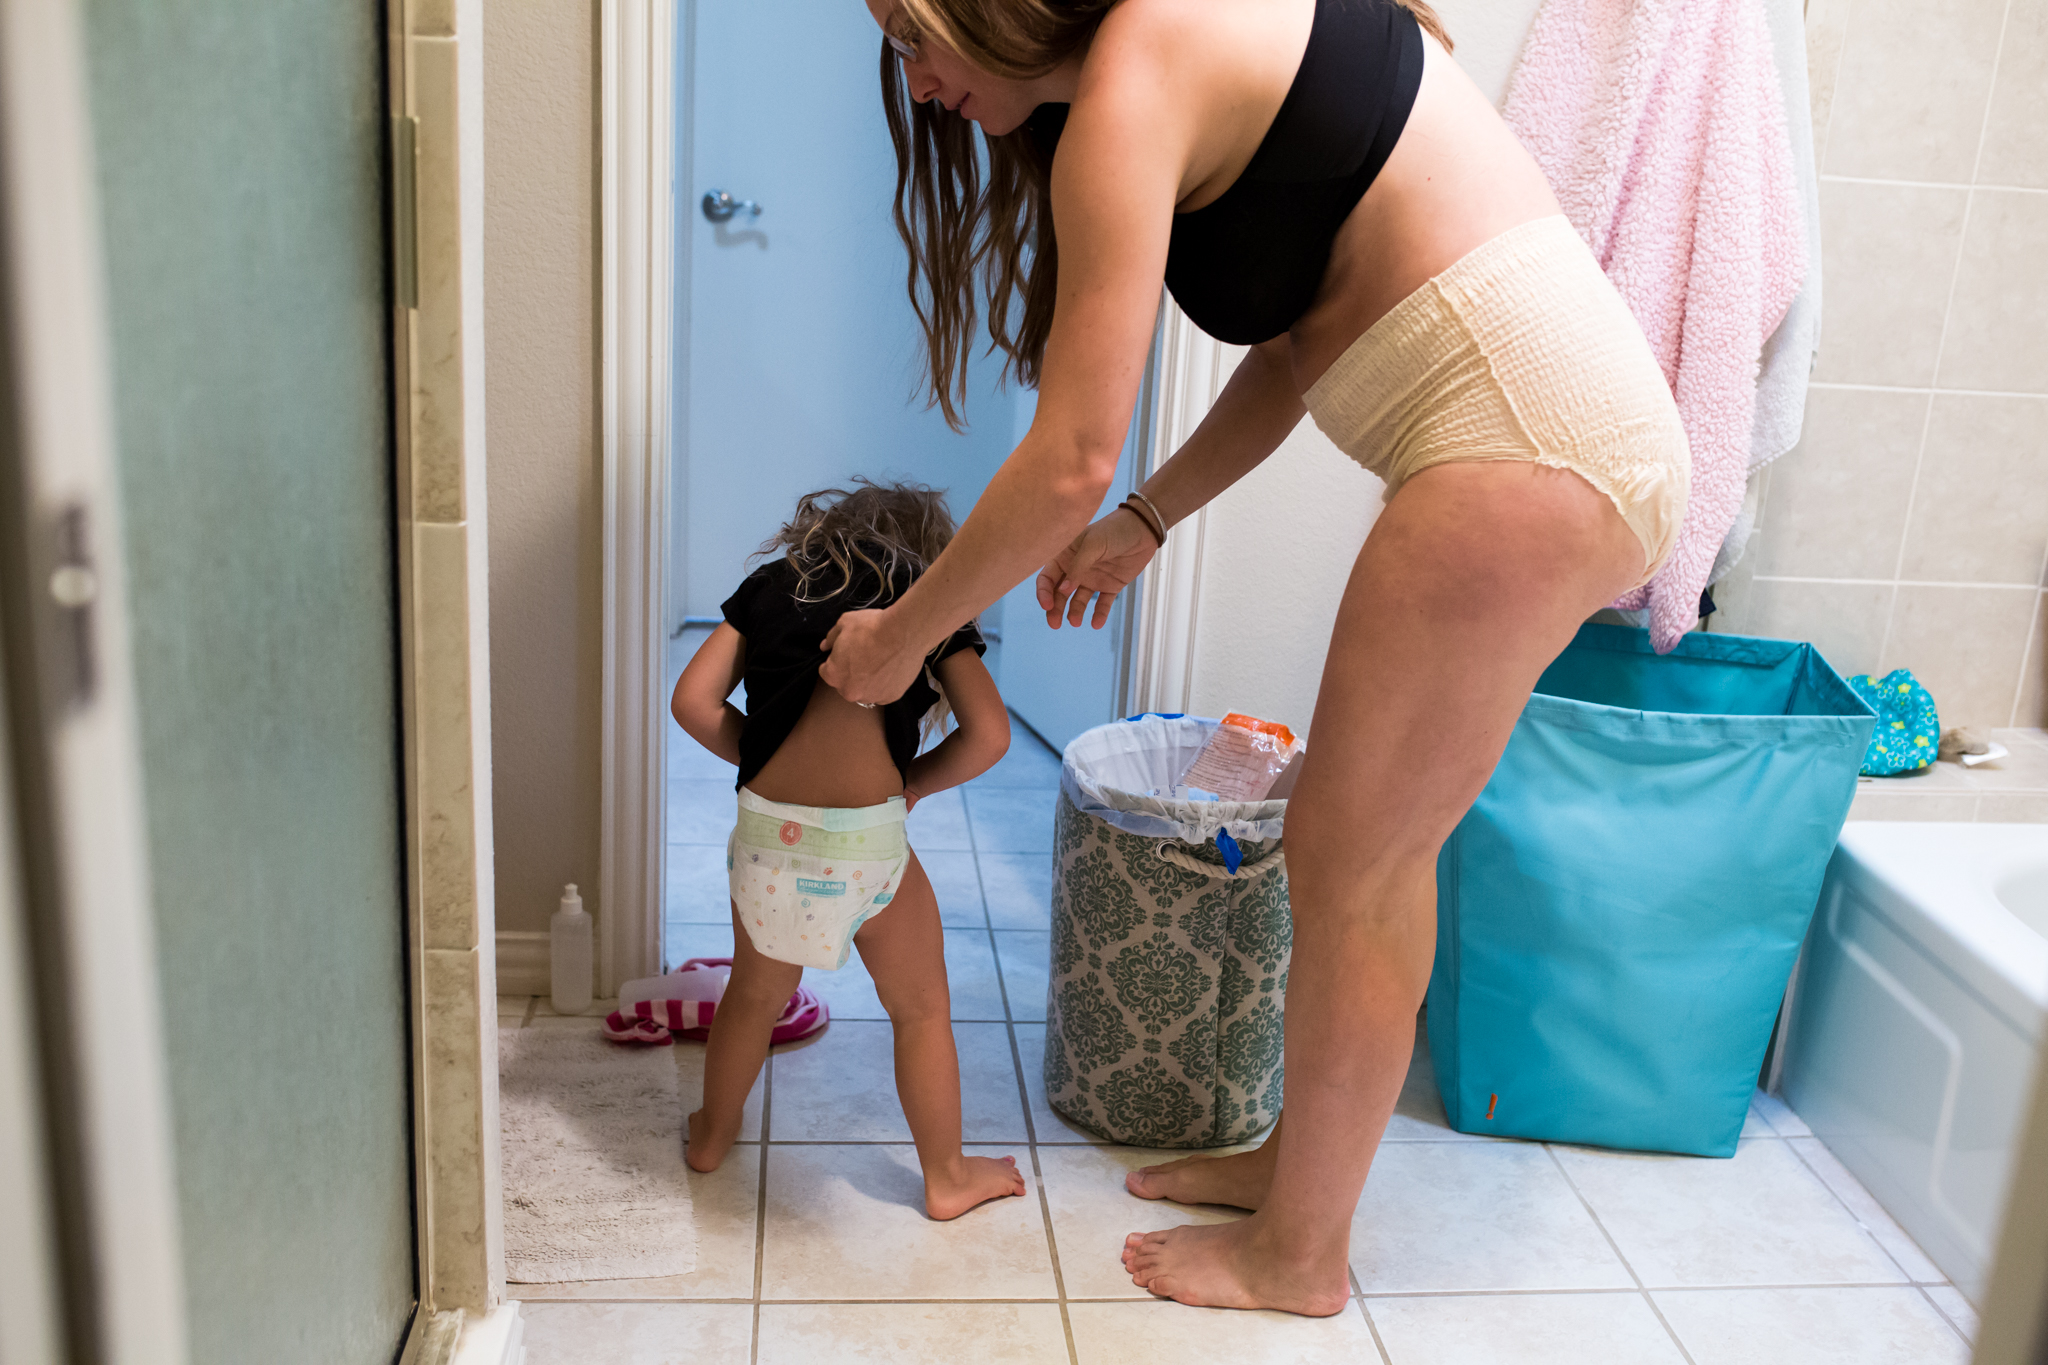 Lawren Rose Photography  takes a picture of a mom wearing depends after just having a baby in the bathroom helping her daughter take off her diaper during their Day In The Life session